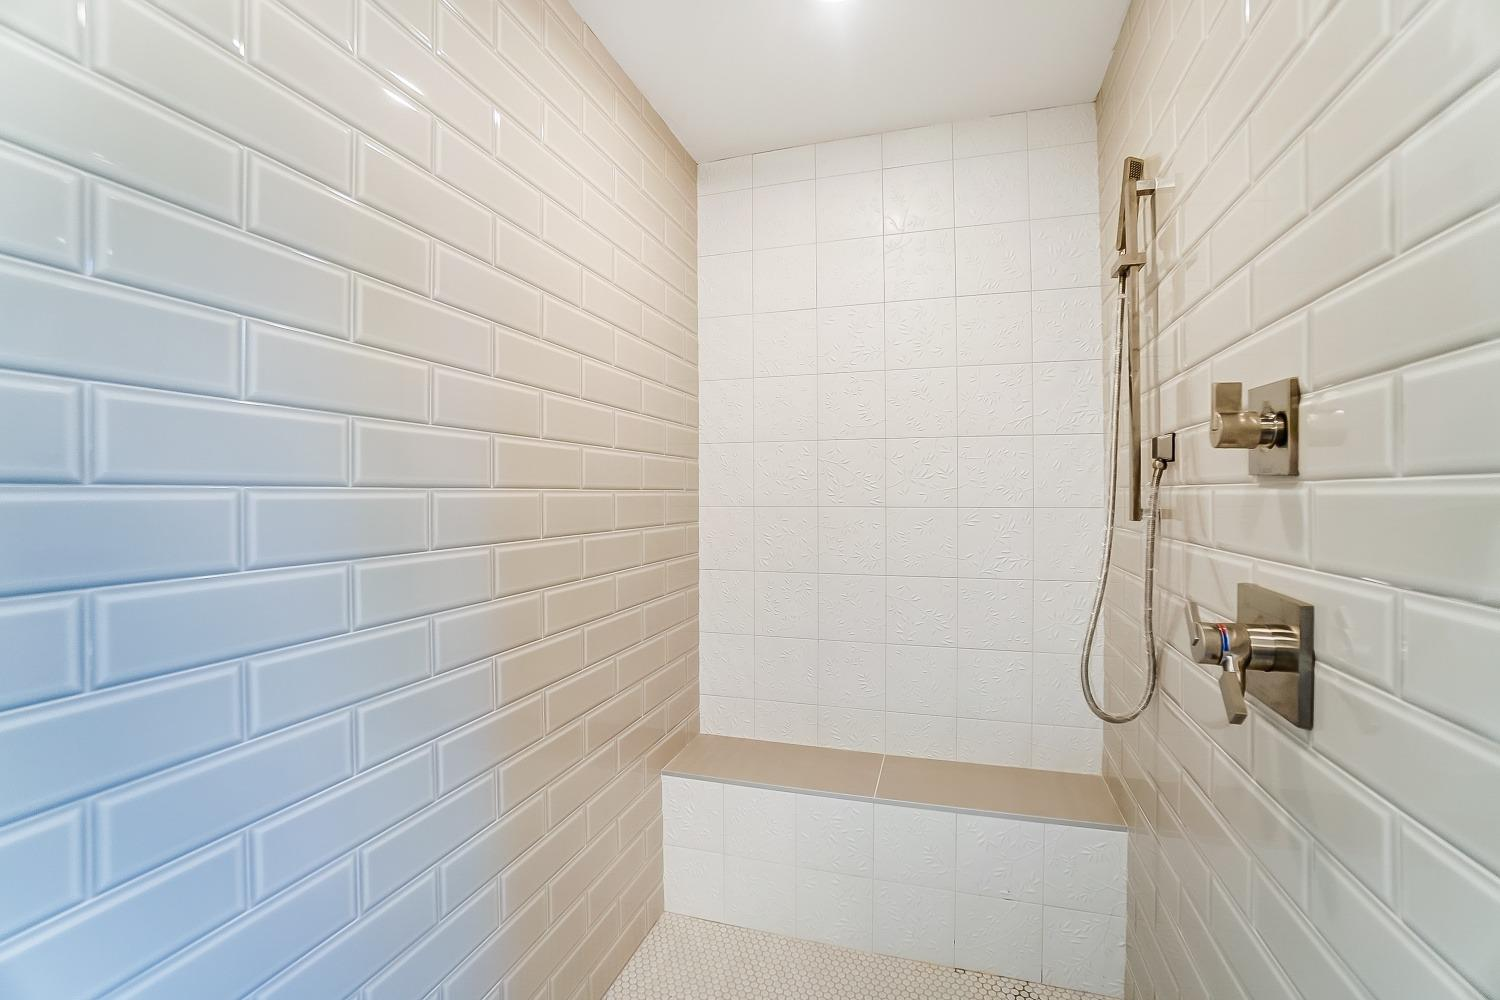 2nd floor, Owner's Suite, additional view of fabulous shower. Willow/Bamboo relief tile and beveled dove gray subway tile. Bench seat. Rain showerhead in ceiling, premium Kohler fixtures with added spray head visible.